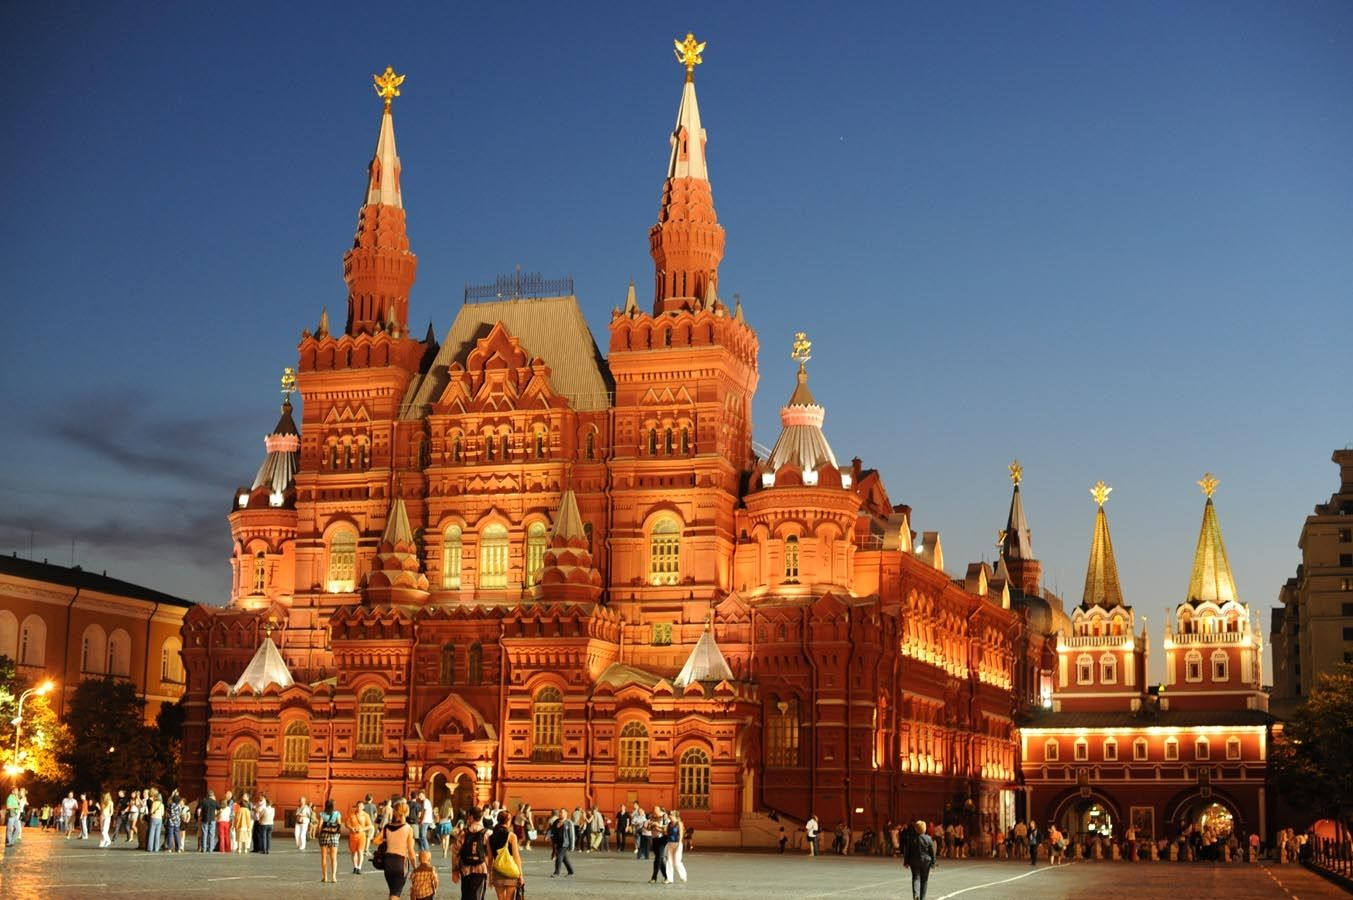 Moscow Holidays Holidays To Moscow Luxury Moscow Holiday European Destination Russia Tours Moscow Hotel